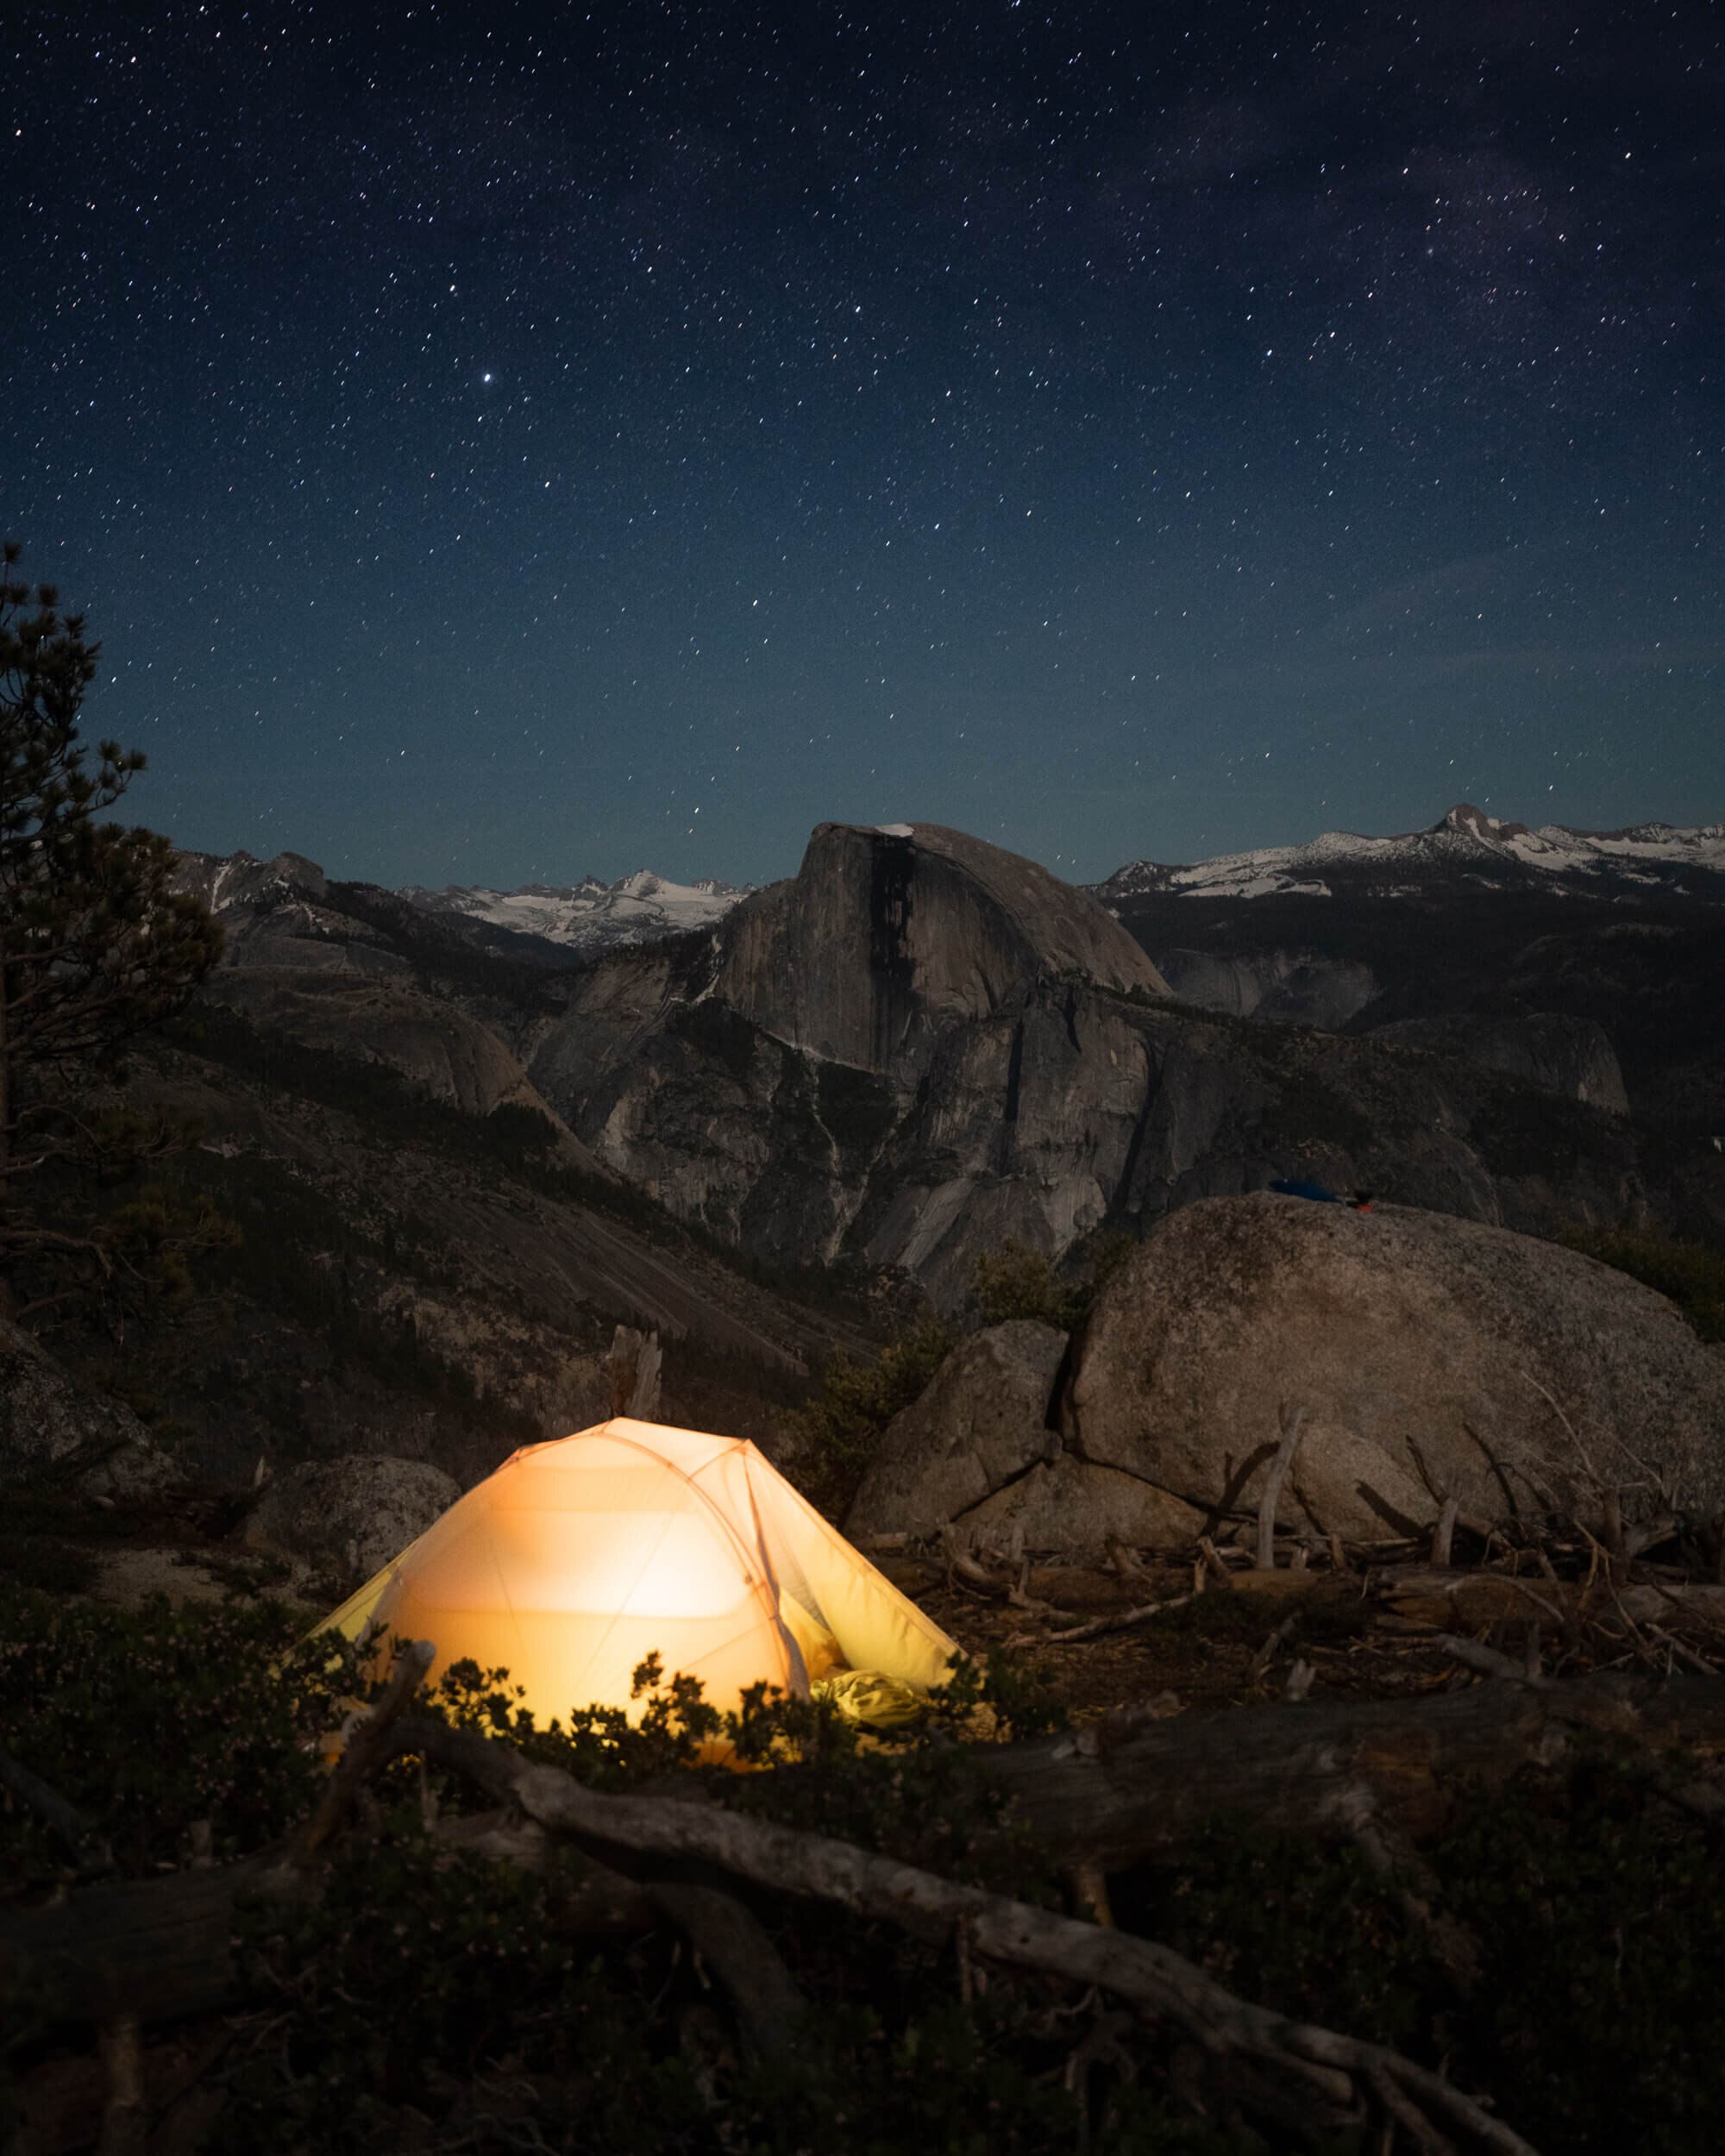 Sleeping under the stars in Yosemite National Park. Tent:  Big Agnes Tiger Wall UL2 Tent